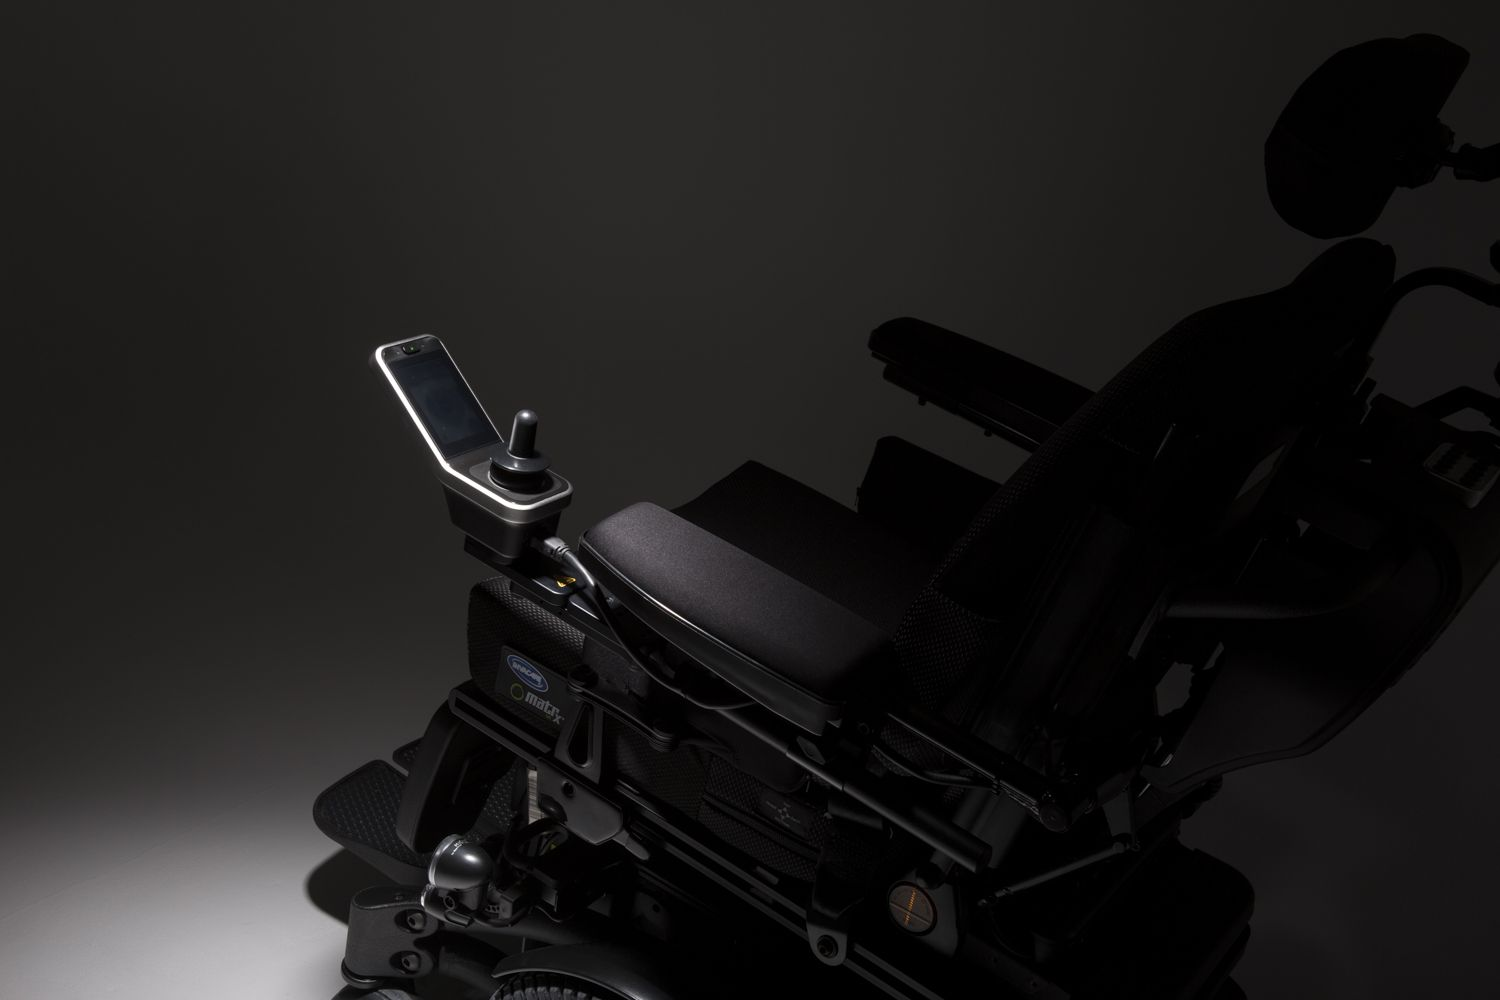 Invacare LiNX REM400 Touch Screen Remote on an Invacare Powerchair